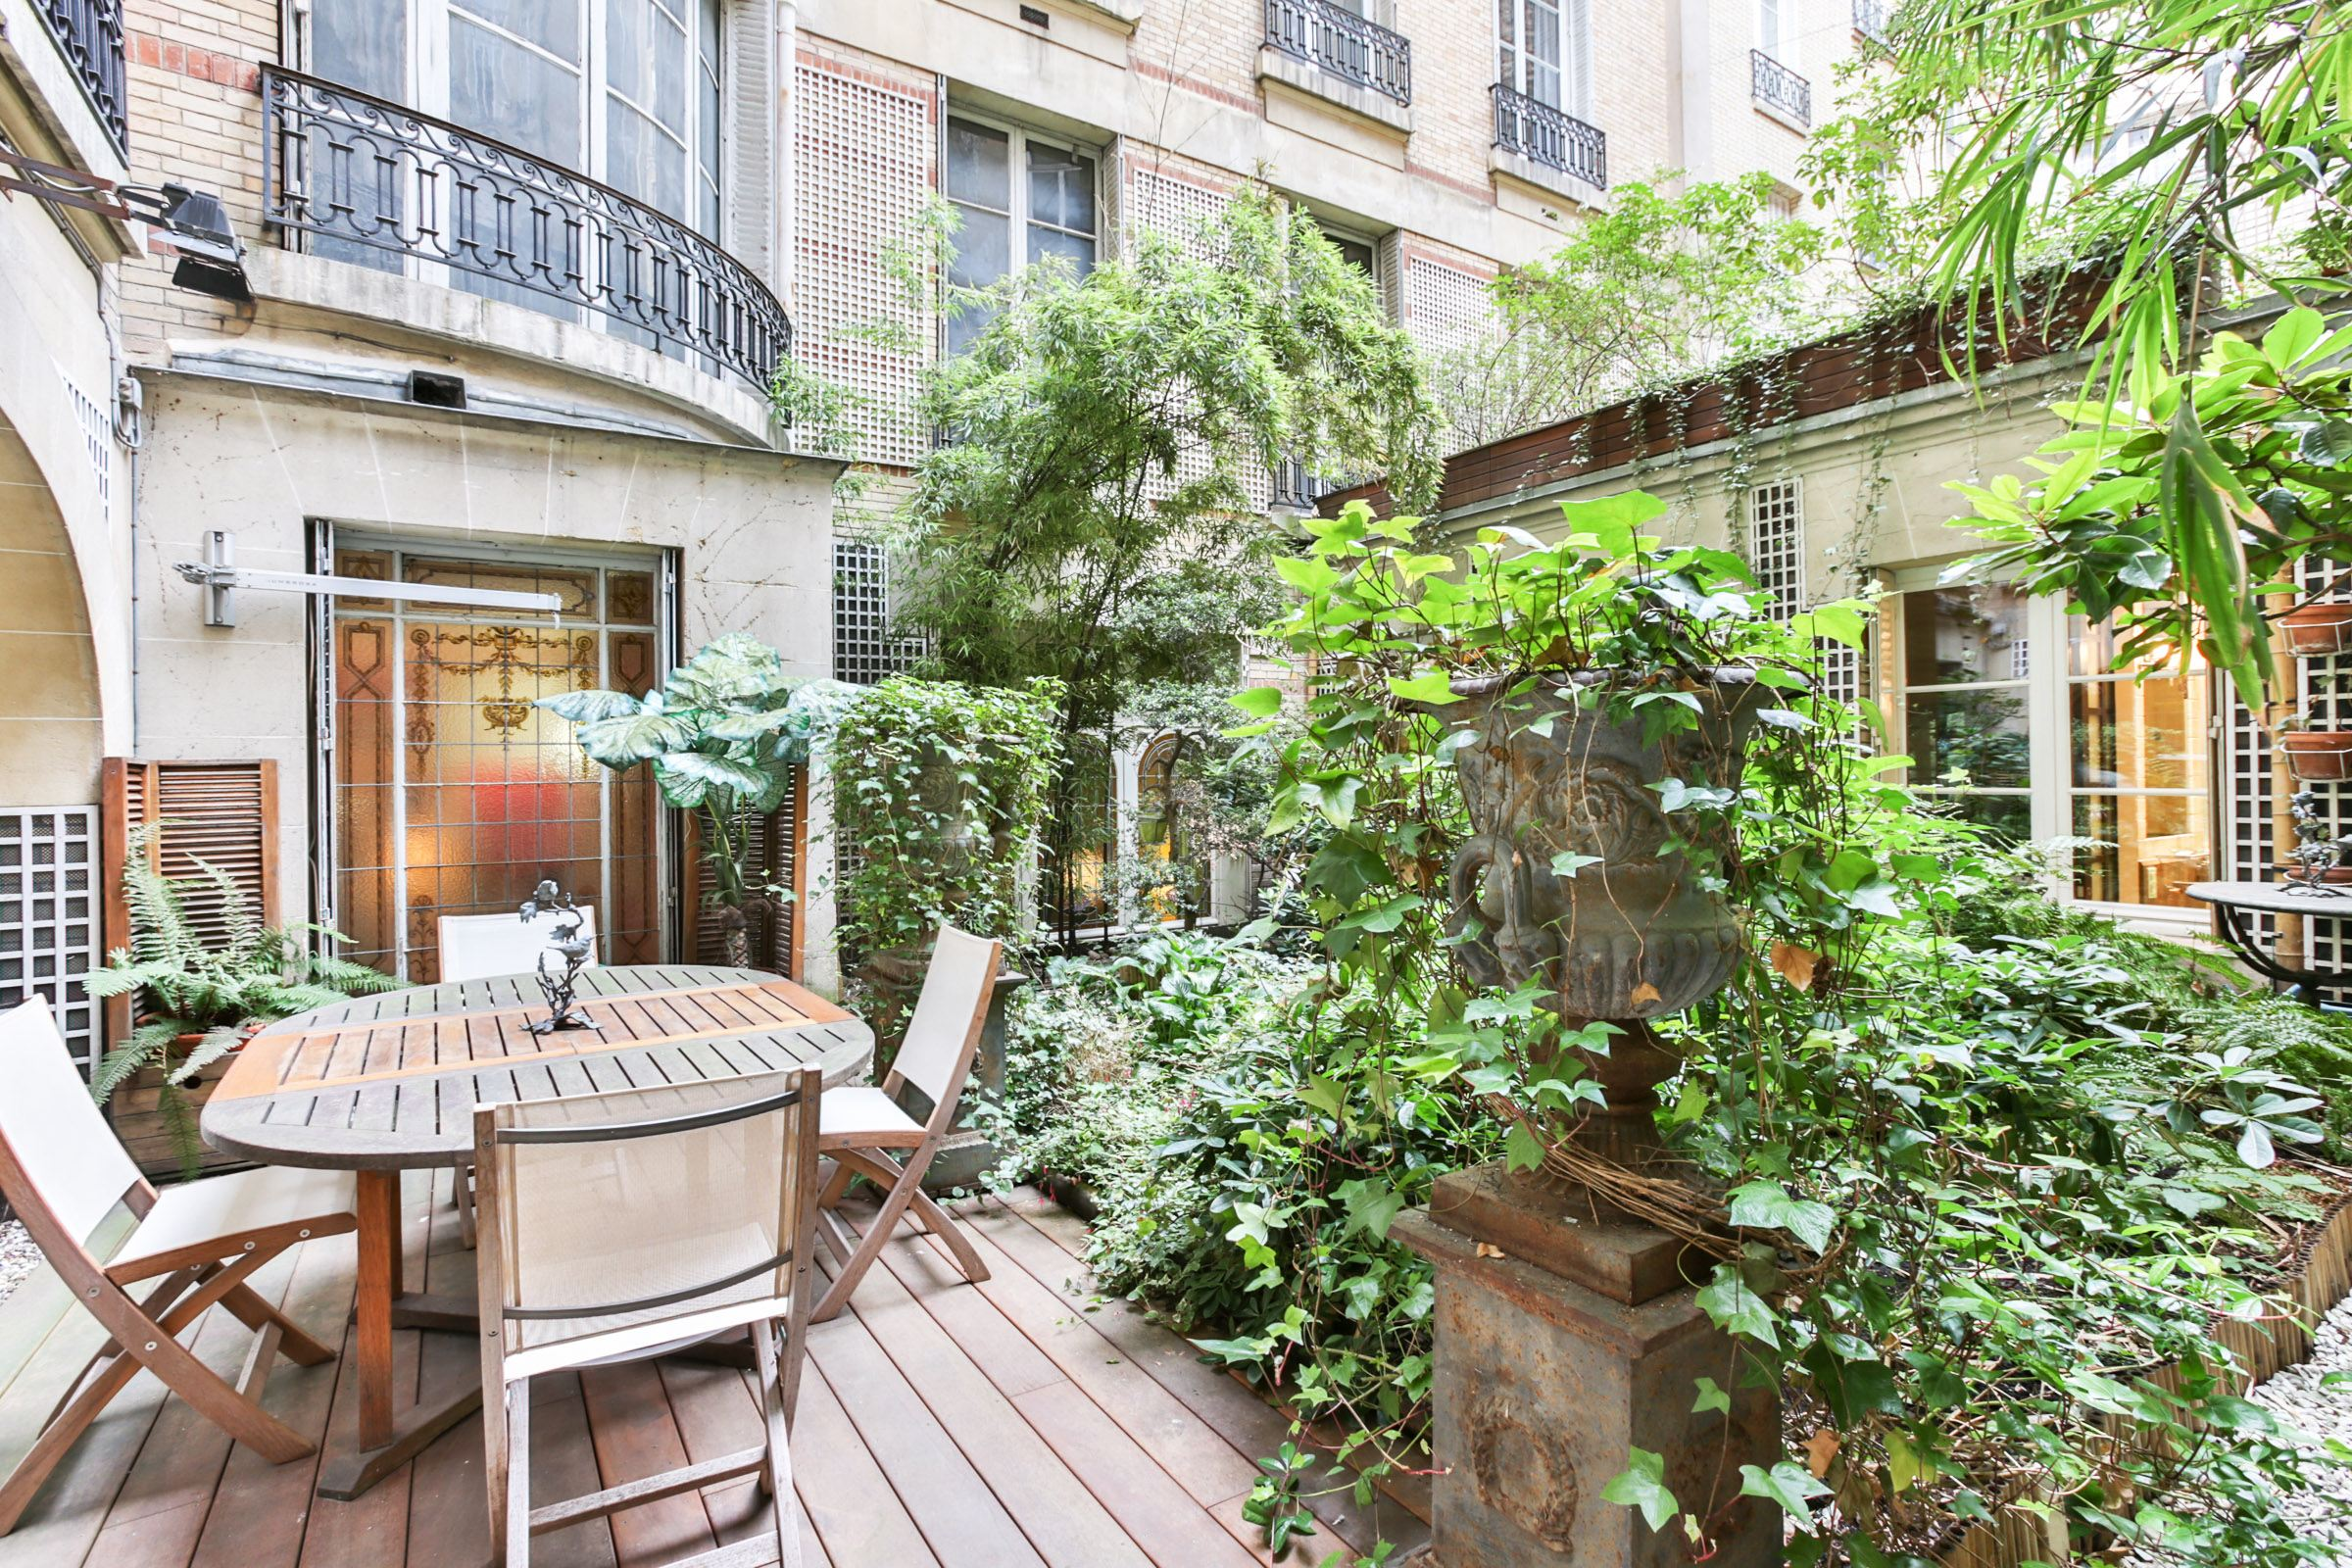 Property For Sale at Paris 16 - OCDE. Apartment with a landscaped garden.